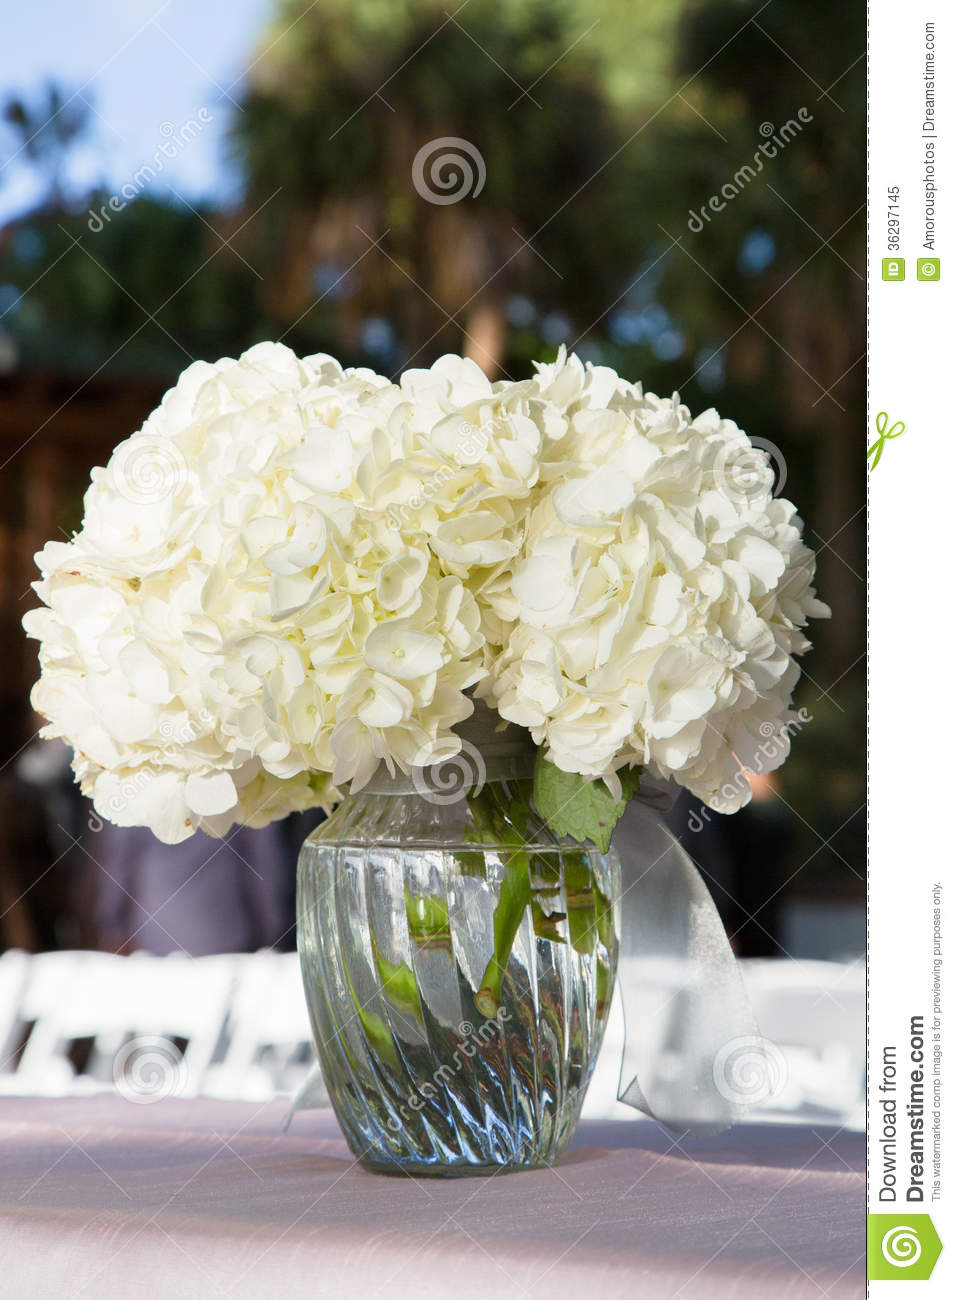 White Flowers In Glass Vase Stock Image  Image of plants